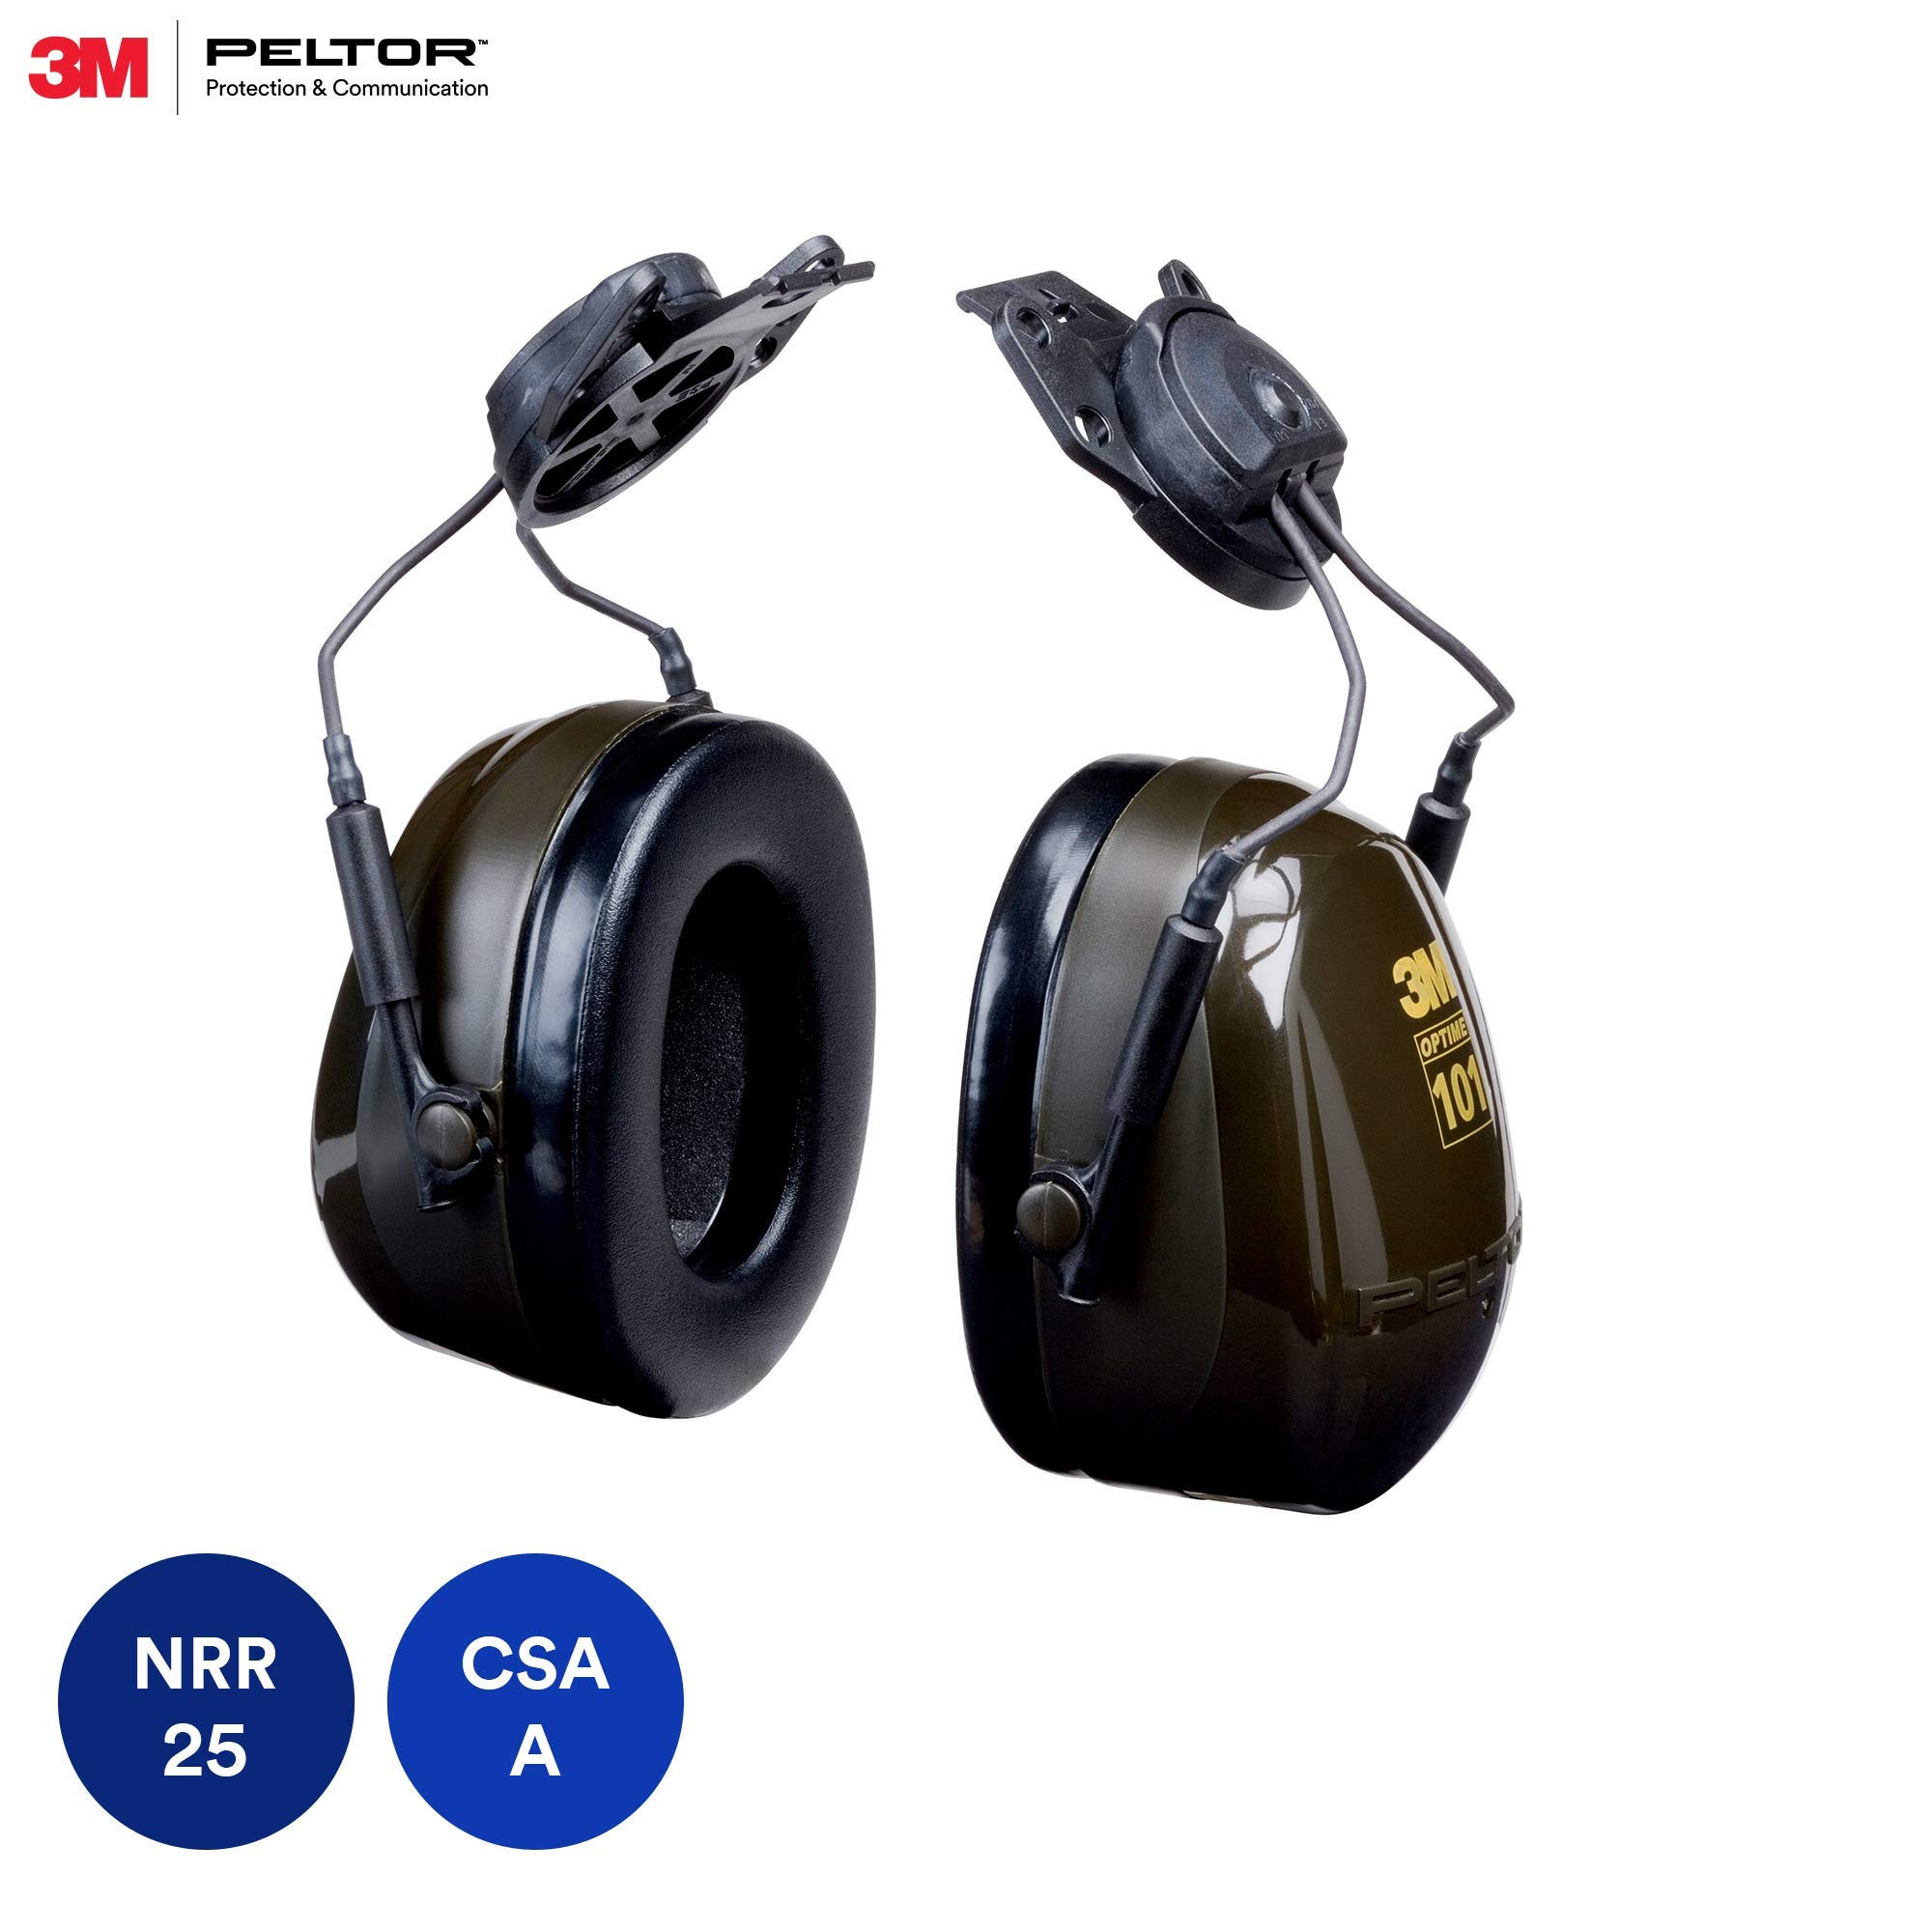 3M Peltor Optime 101 Helmet Attachable Earmuff, Hearing Protection, Ear Protectors, NRR 24 dB by 3M